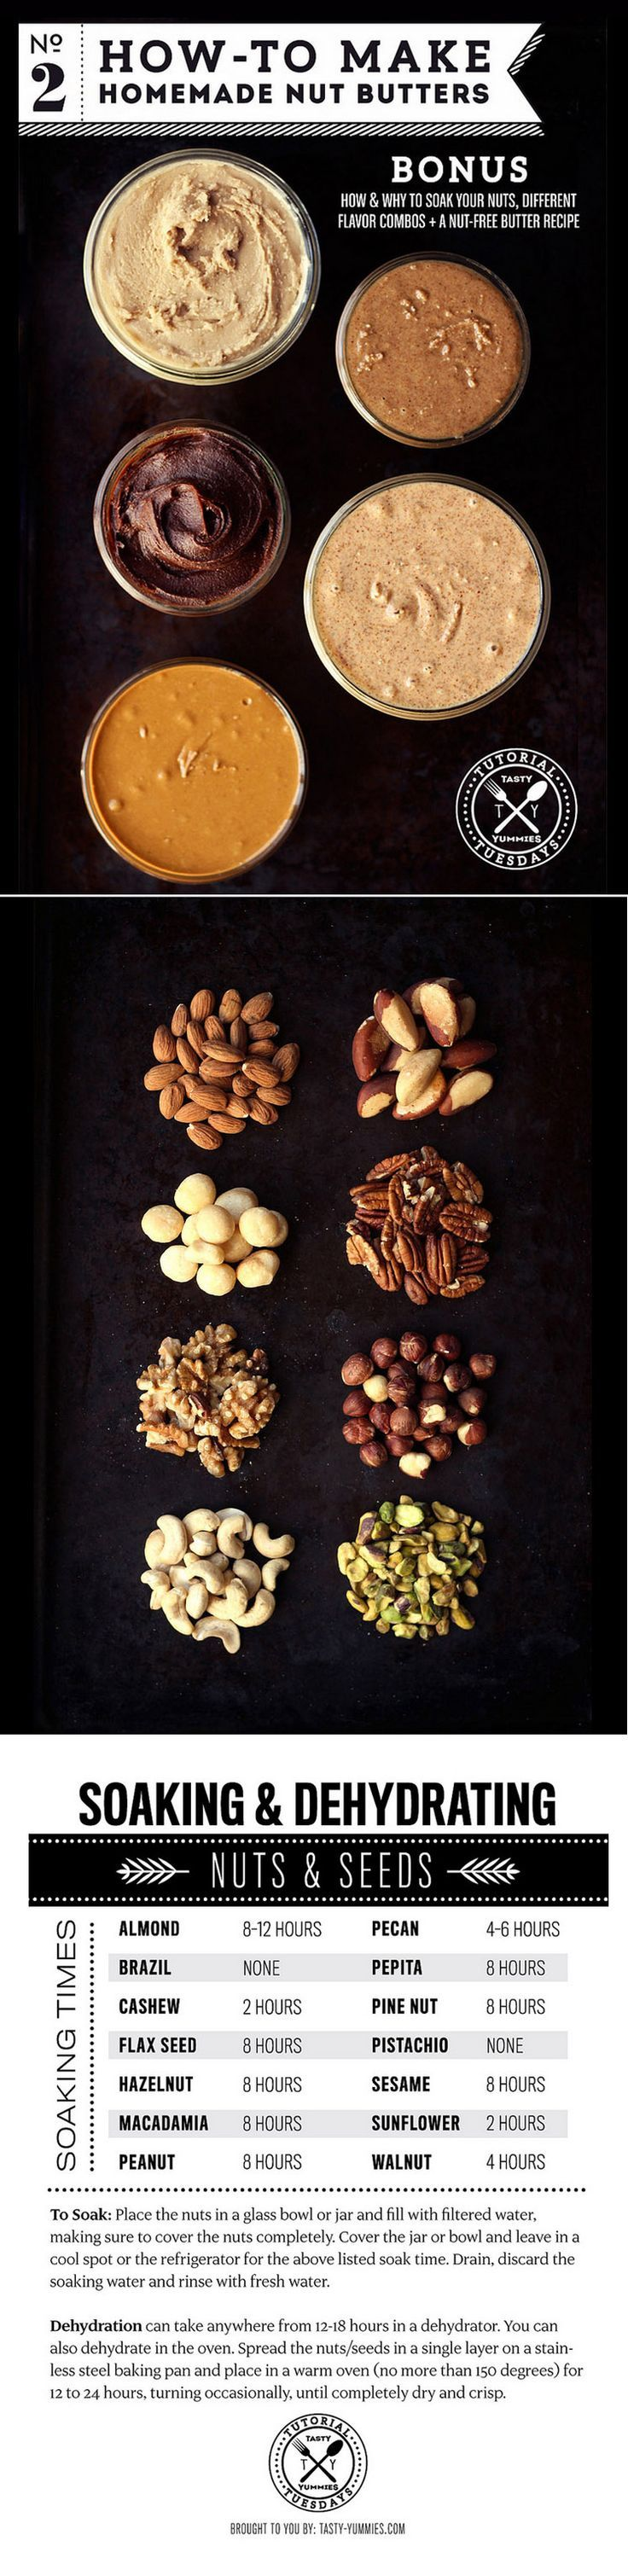 How-to Make Homemade Nut Butters - Includes recipes to make a butter version of every major nut, from almonds and cashews to pecans and macadamia.